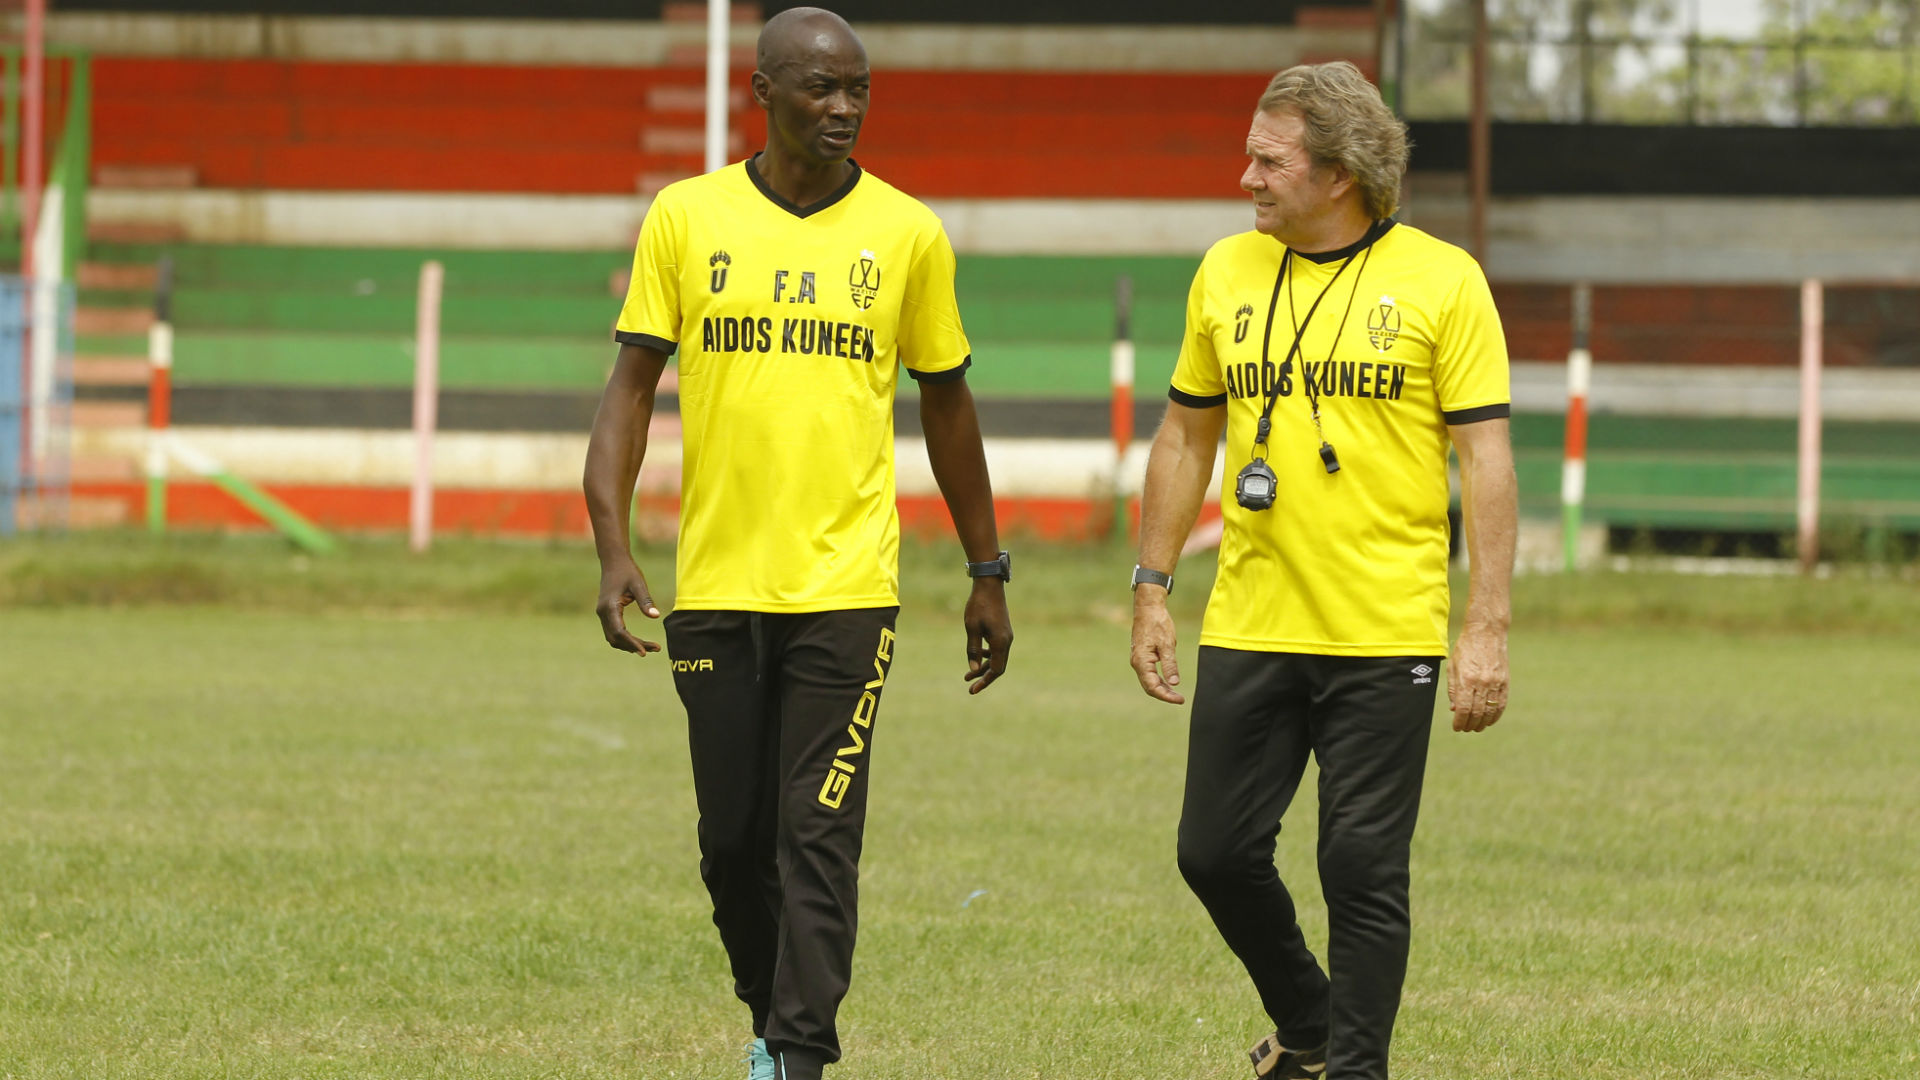 Wazito FC have been hurt by failure to take chances - Hall | Goal.com